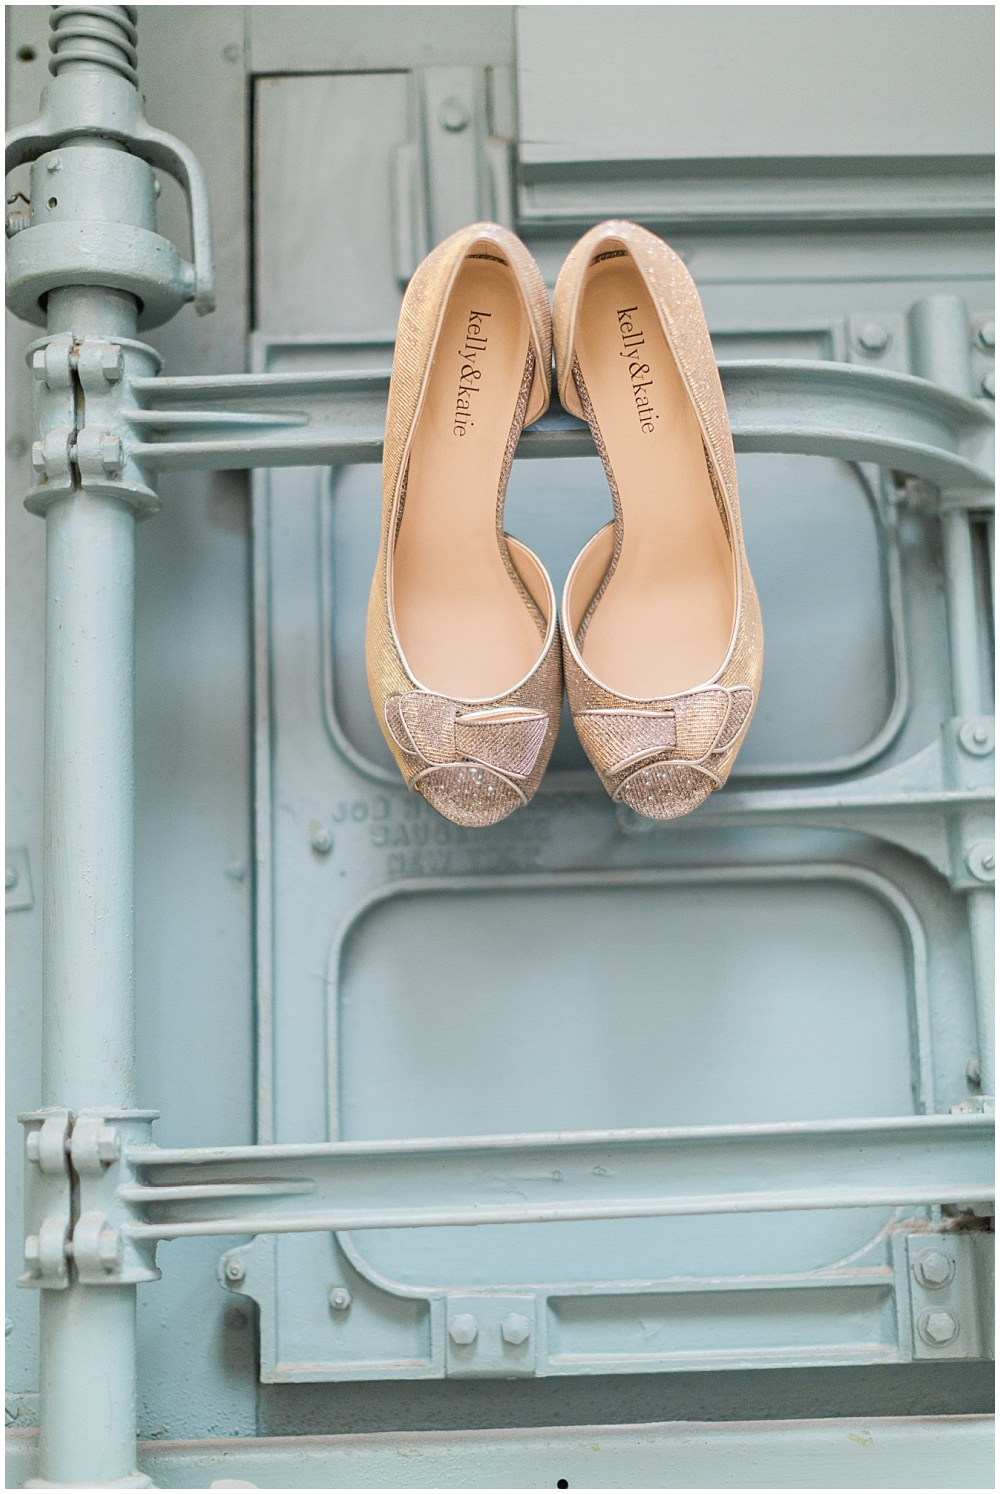 Gold Wedding Shoes | Downtown Indianapolis Wedding by Gabrielle Cheikh Photography & Jessica Dum Wedding Coordination